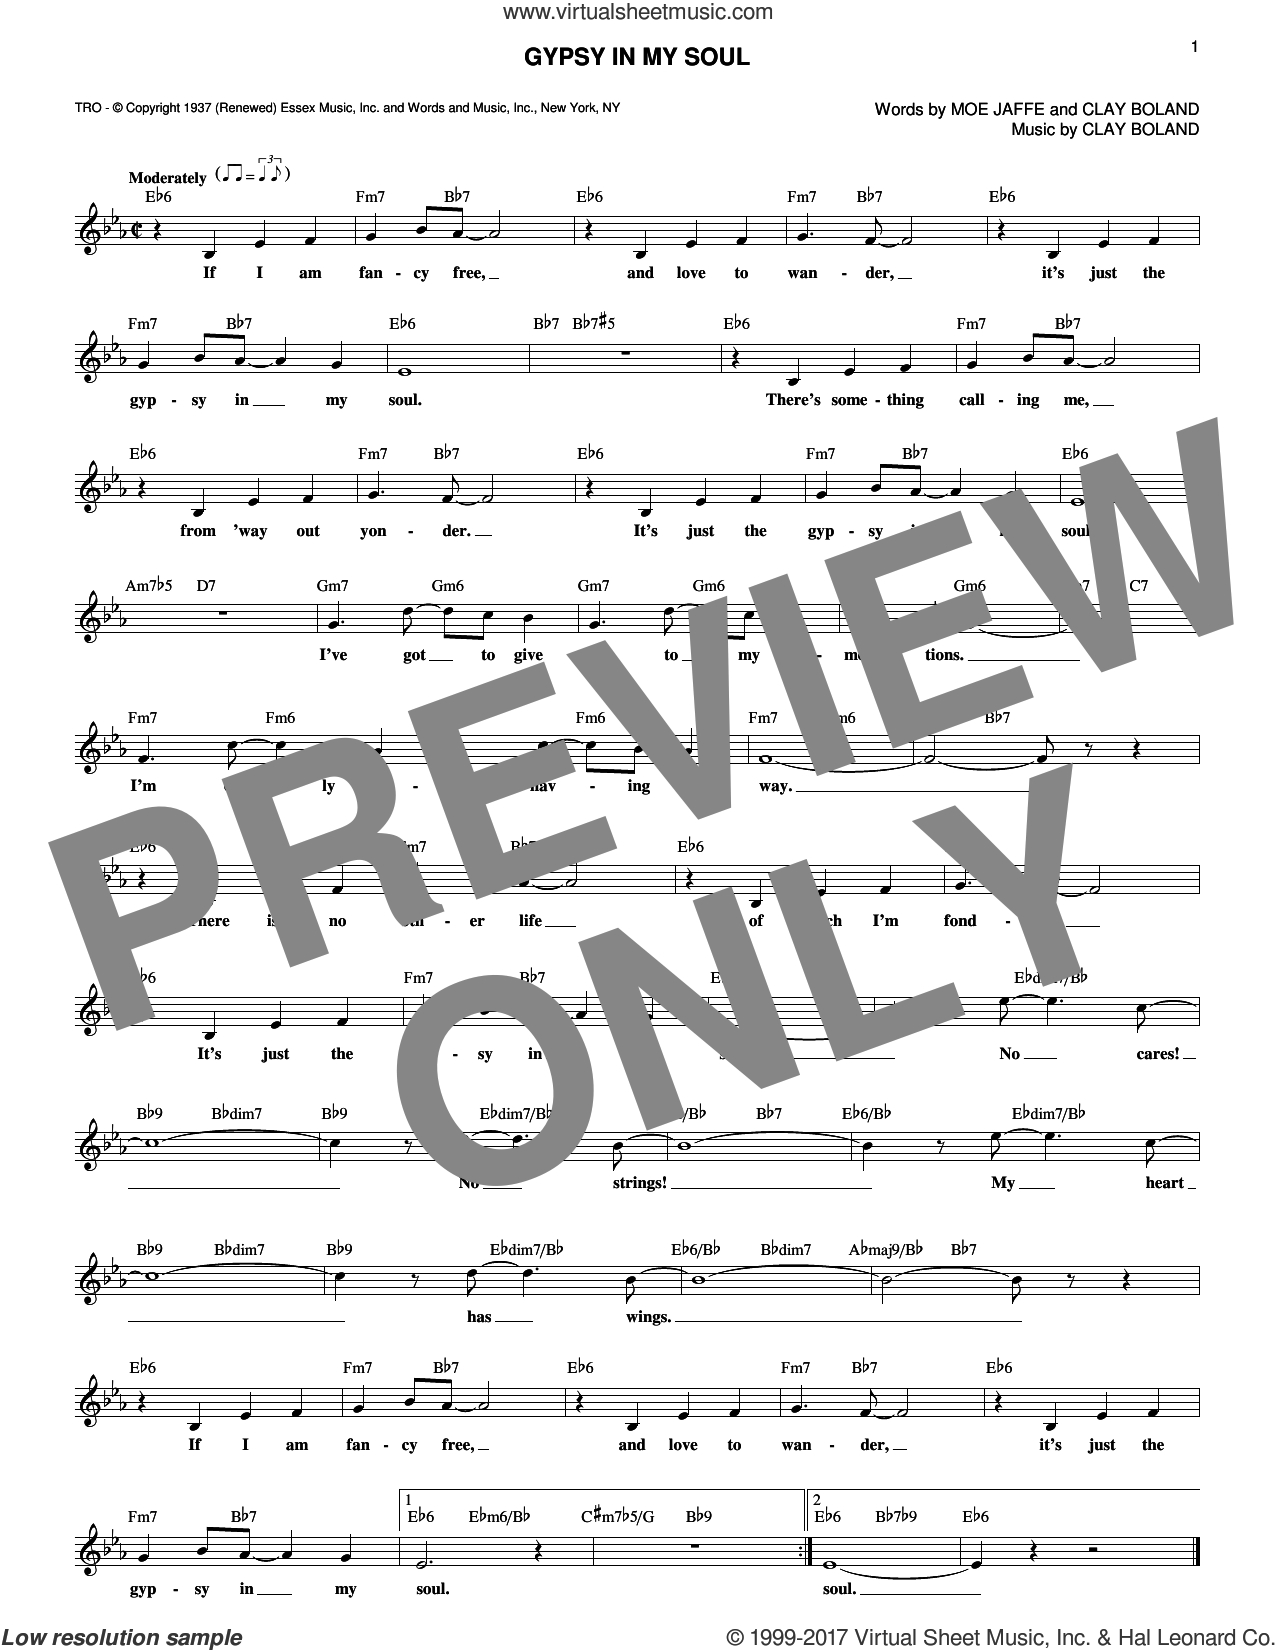 Gypsy In My Soul sheet music for voice and other instruments (fake book) by Moe Jaffe and Clay Boland, intermediate skill level